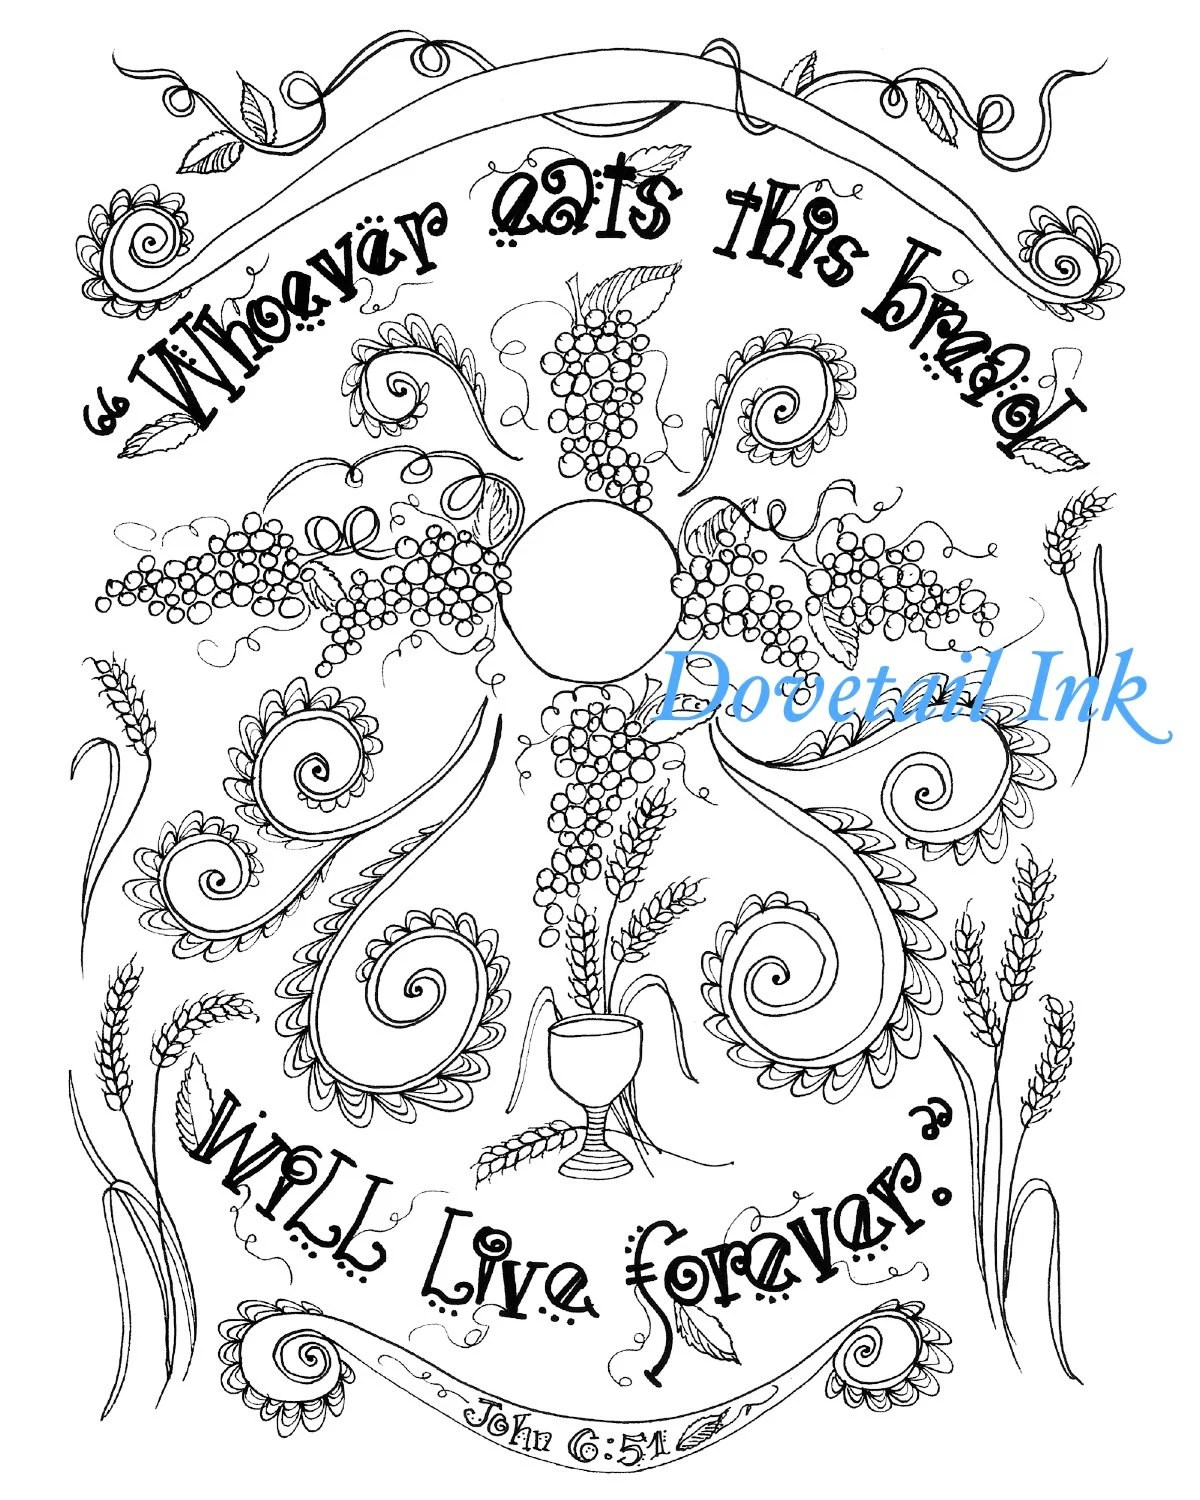 Printable Bread of Life Catholic Scripture Art Coloring